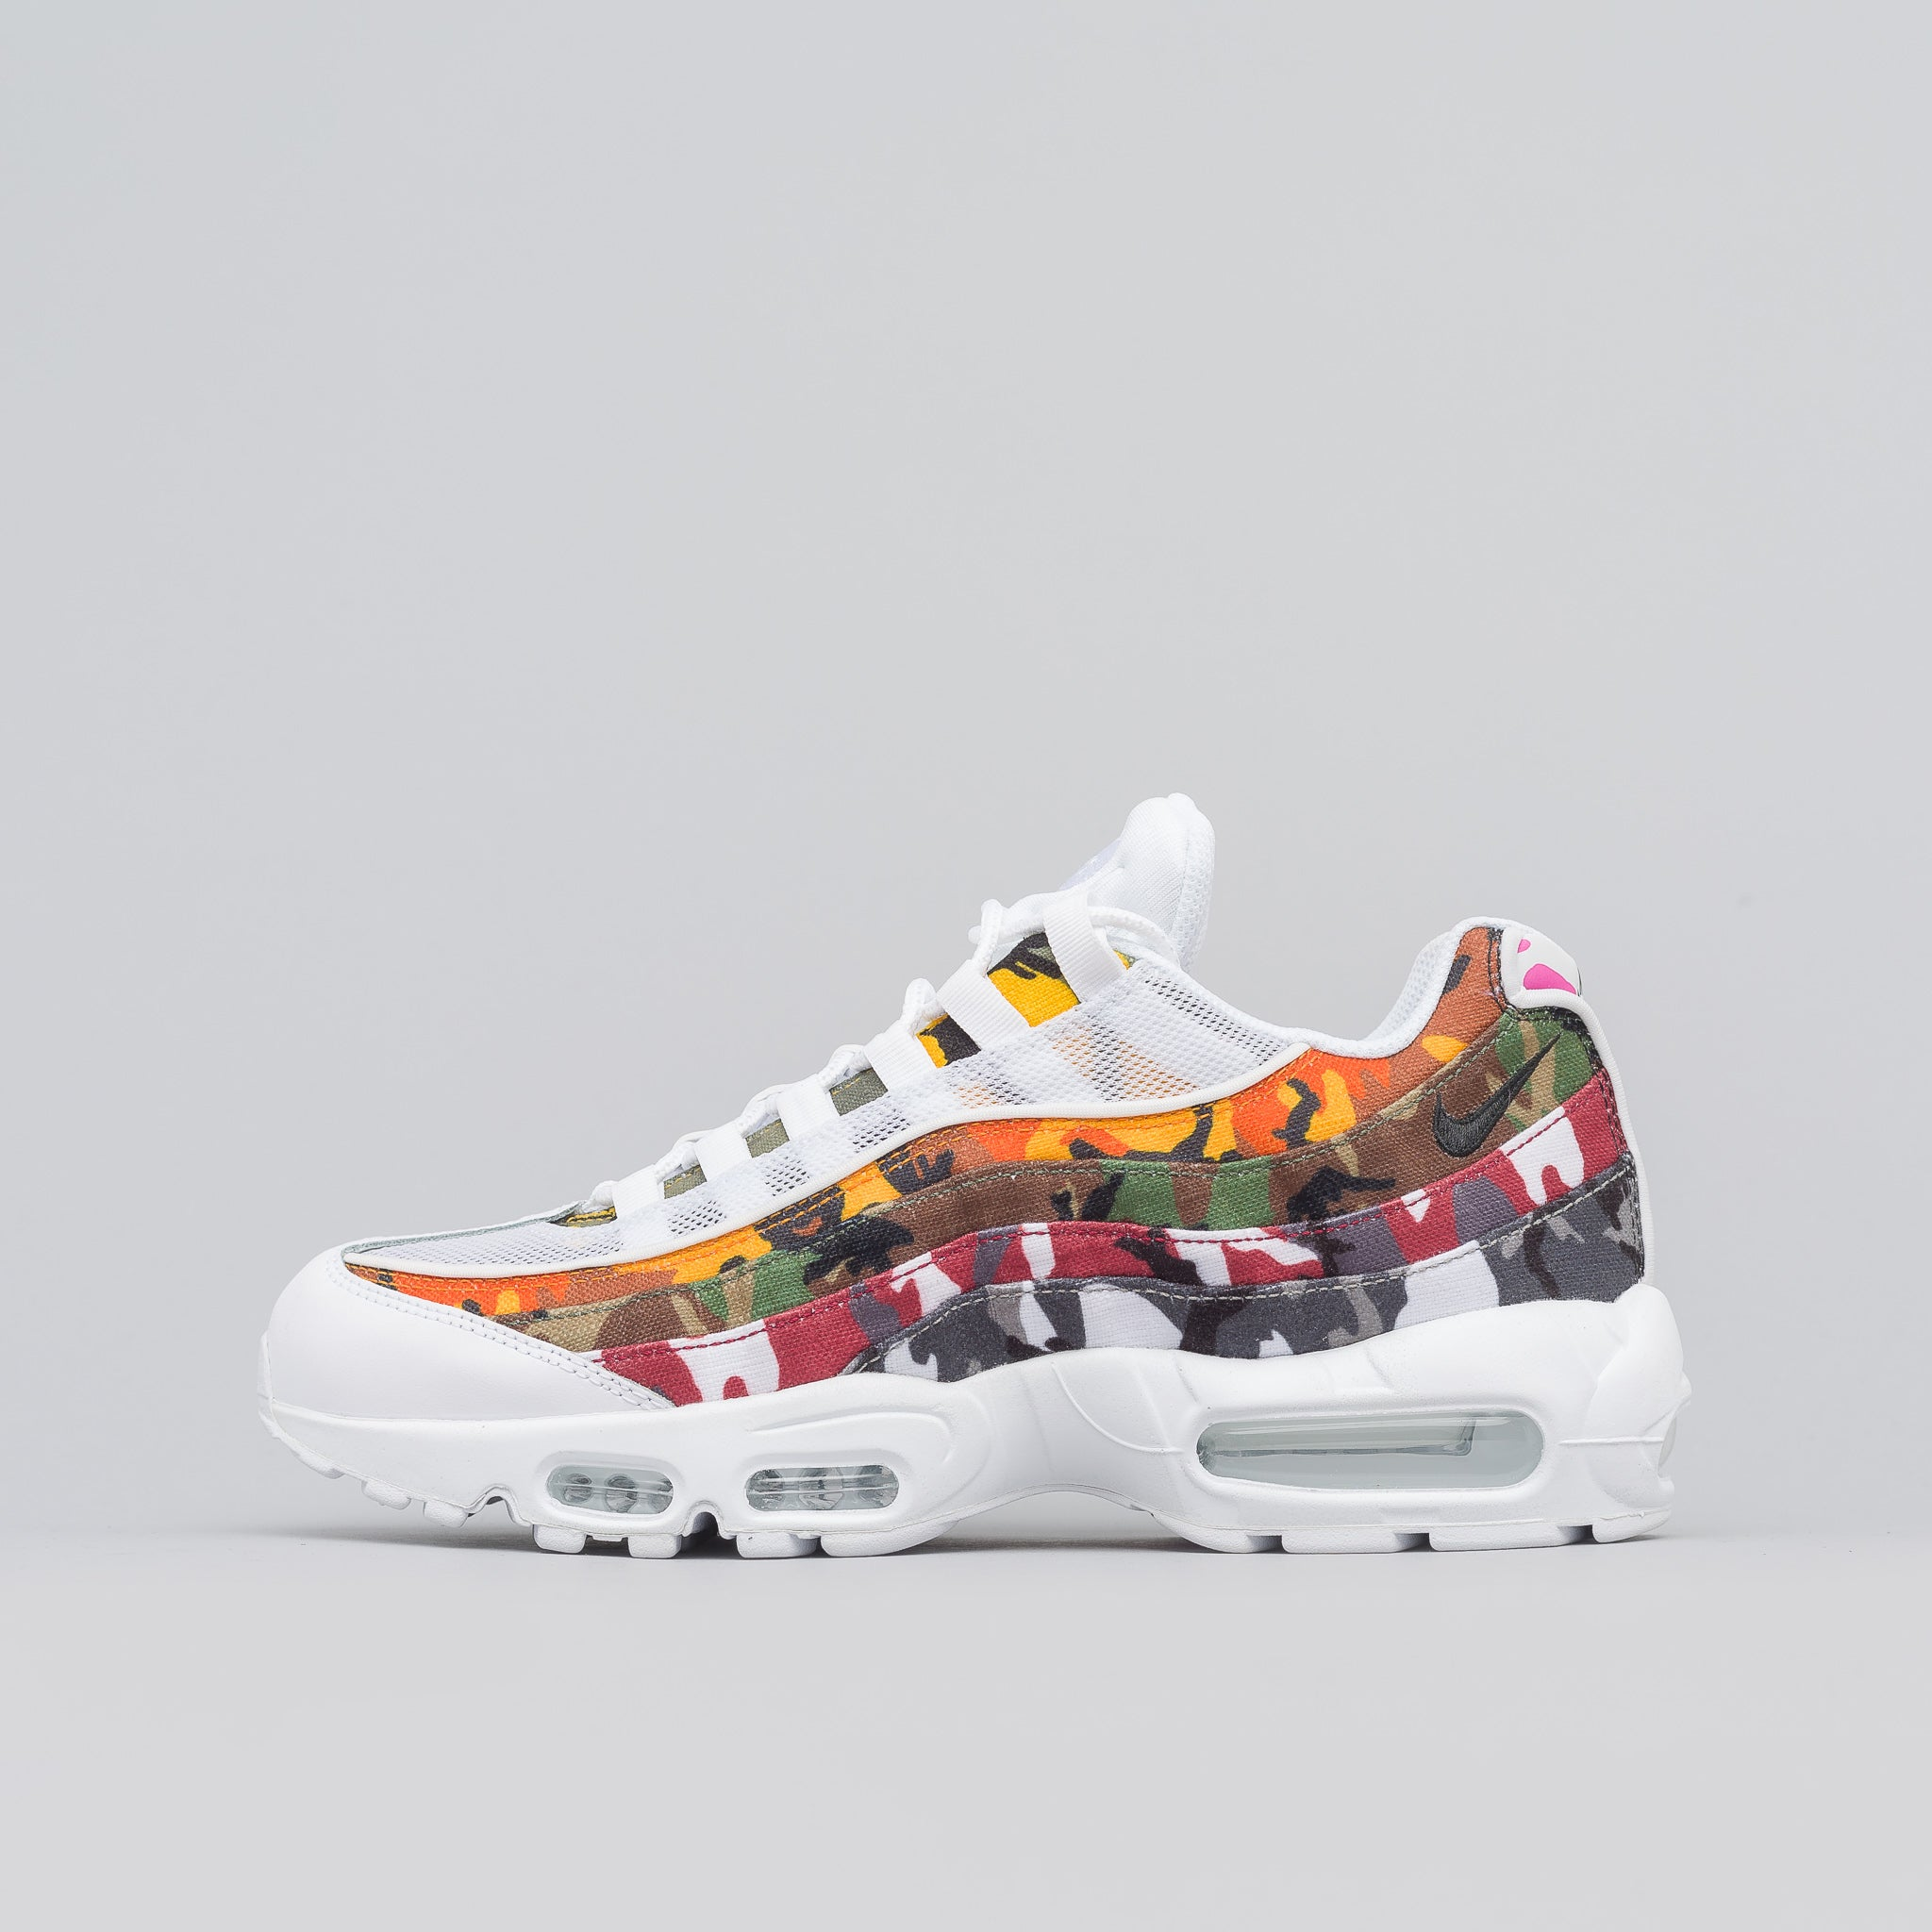 Air Max 95 ERDL Party in White Camo